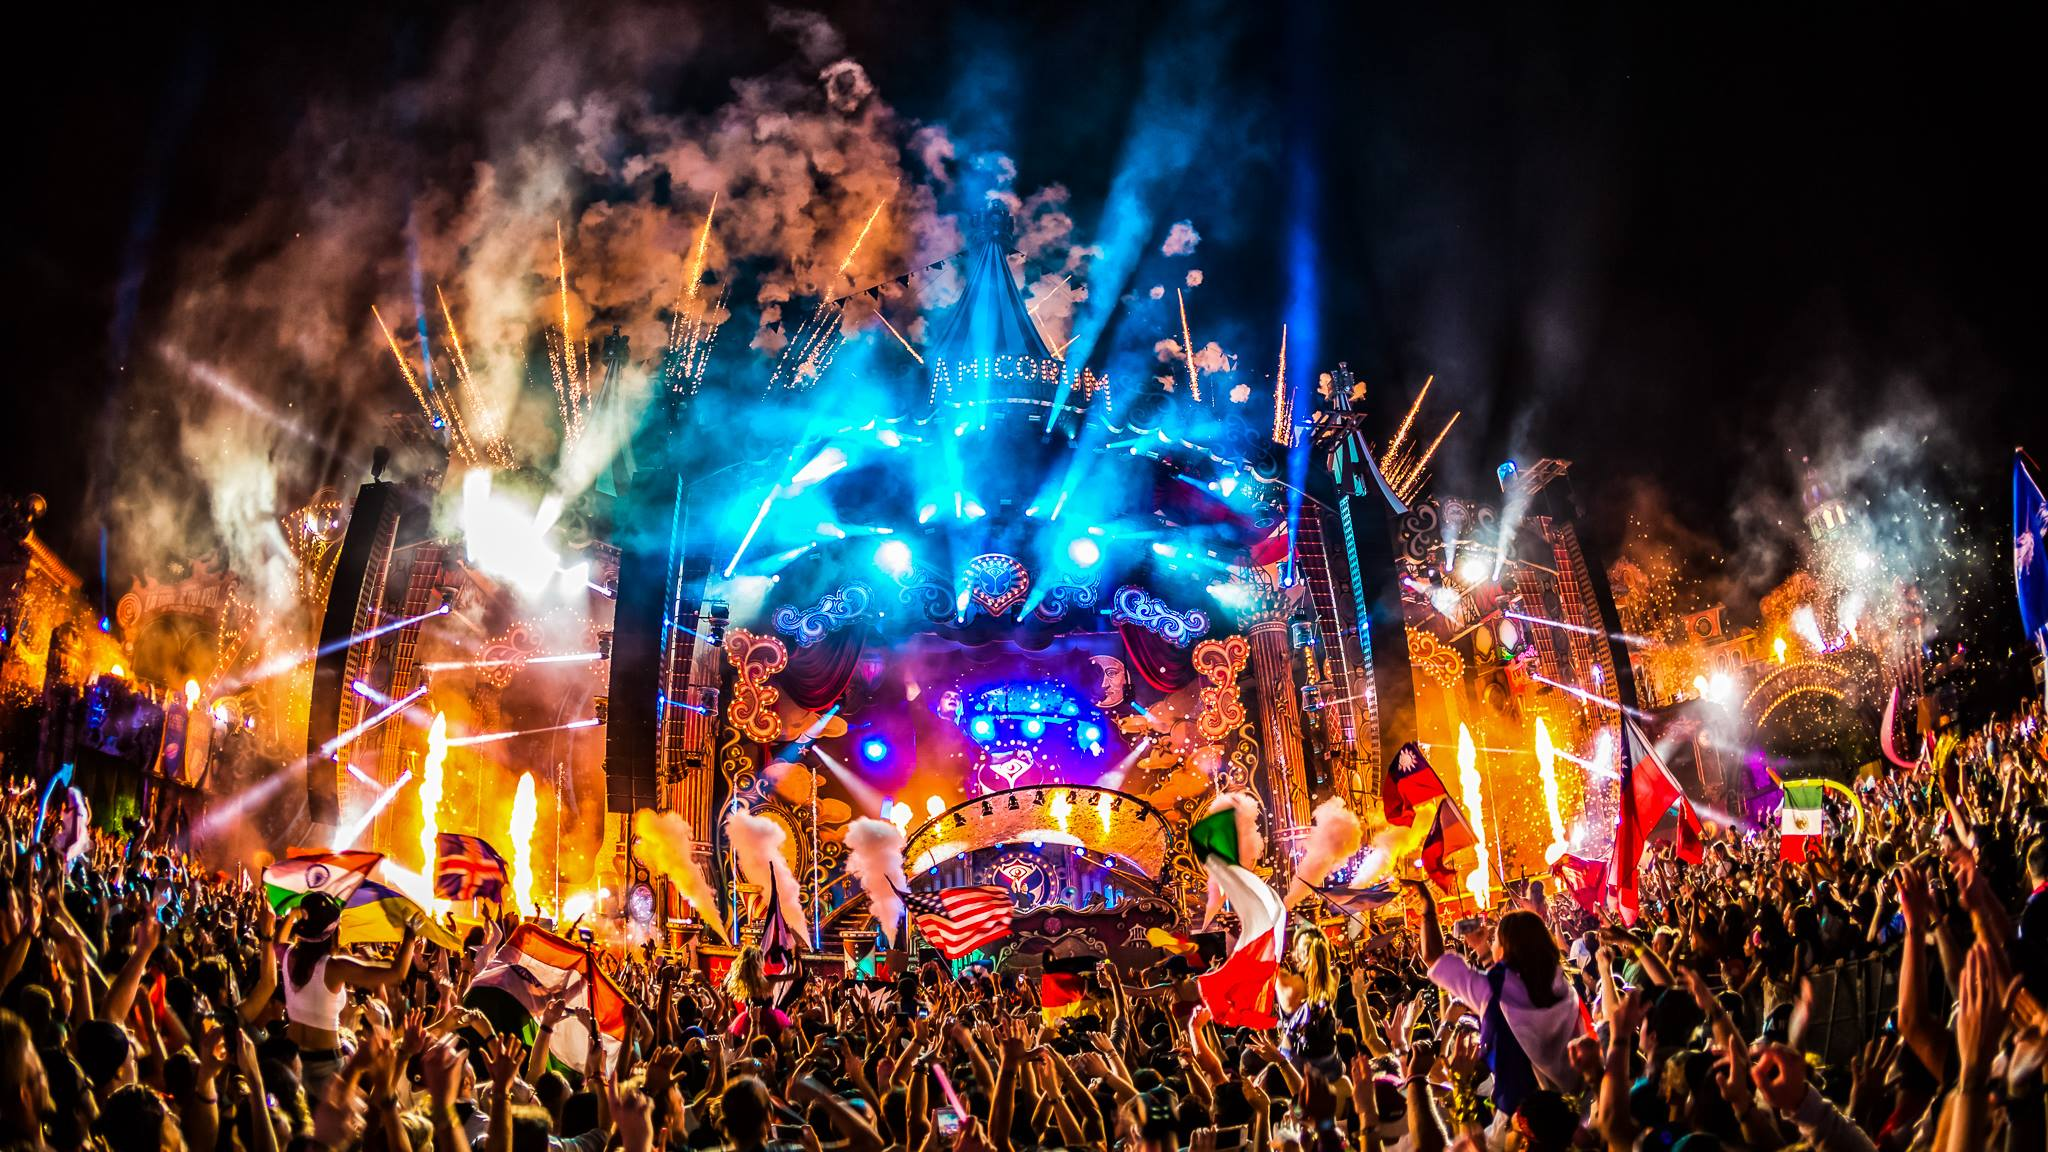 Tomorrowland 2017 Live Dj Sets Kaskade Alesso Jauz